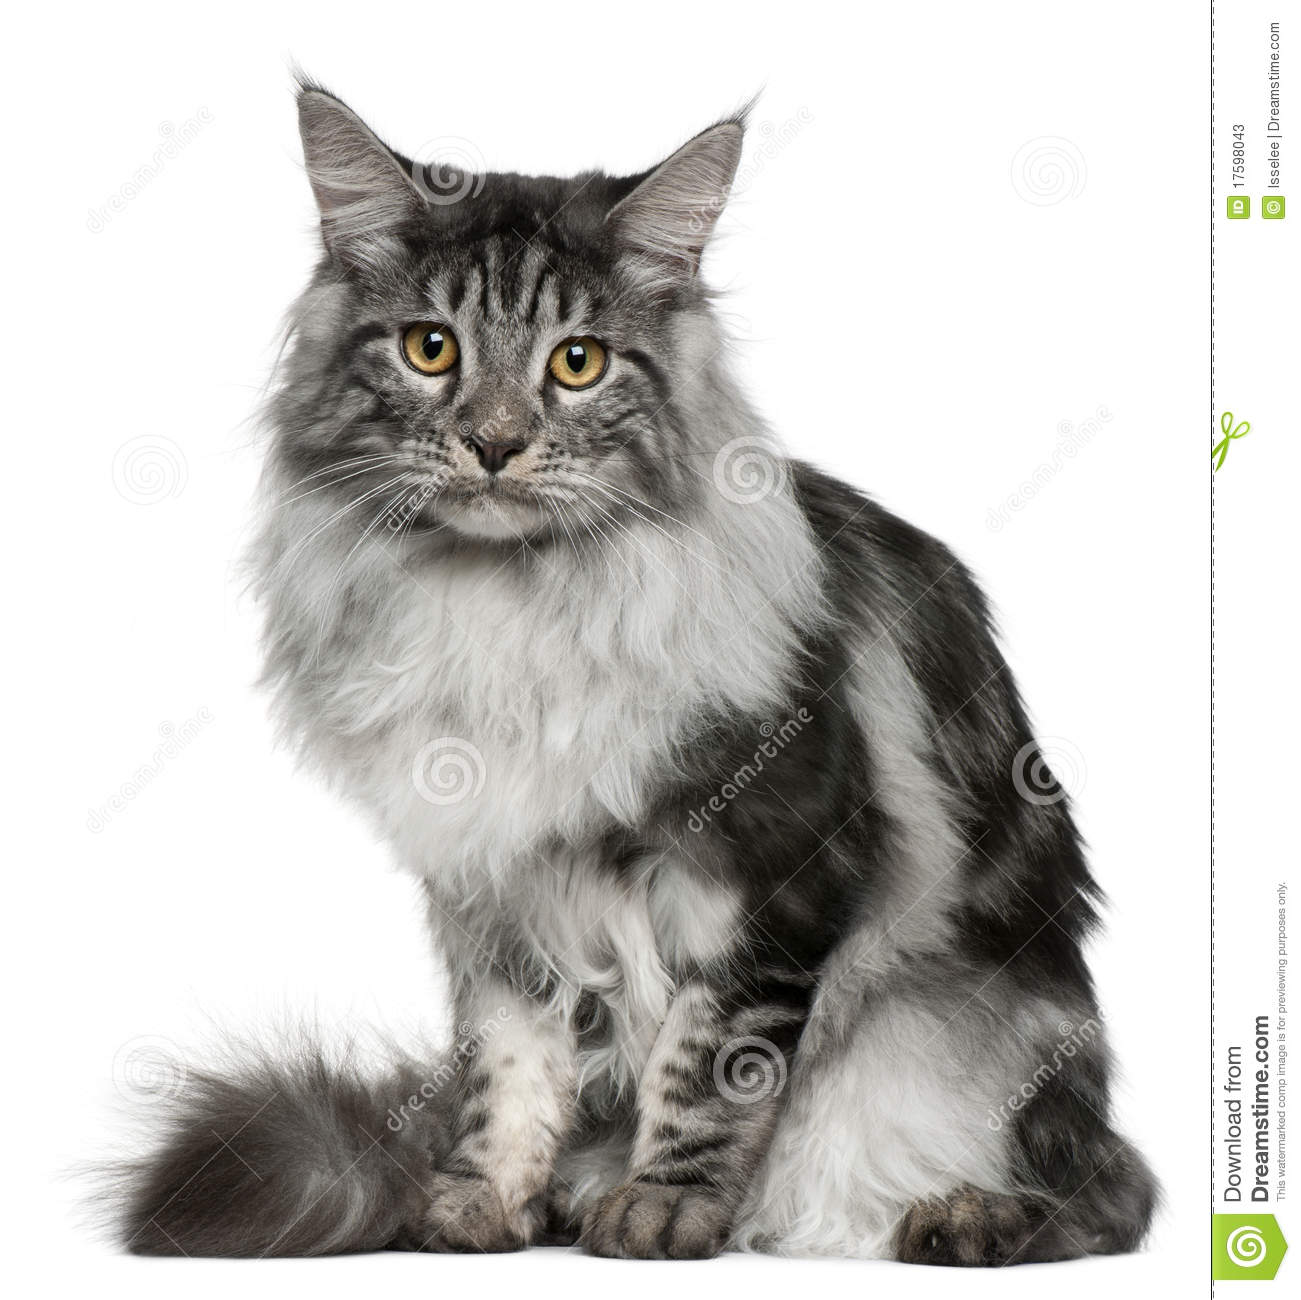 maine coon cat 7 months old sitting stock image image of looking indoors 17598043. Black Bedroom Furniture Sets. Home Design Ideas